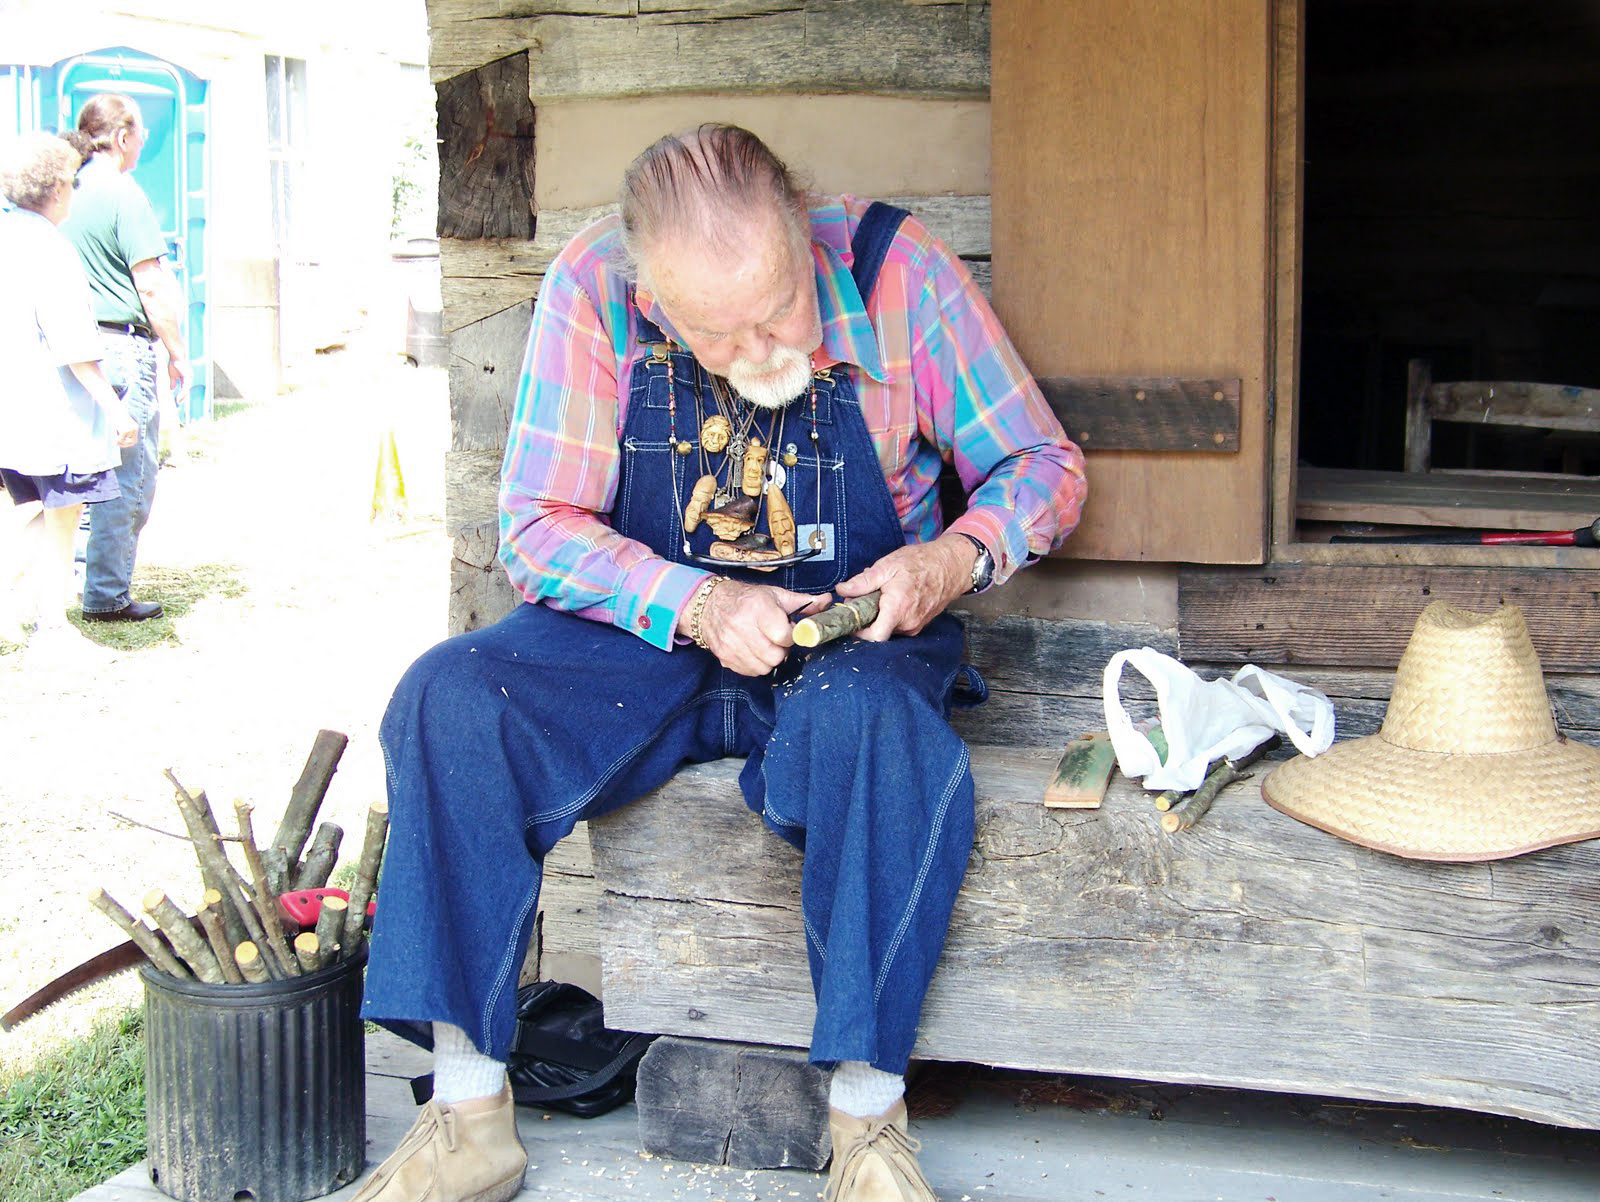 Whittling-on-the-porch-of-the-Payne-cabin-at-the-2008-Mountain-Marketplace-Festival.jpg